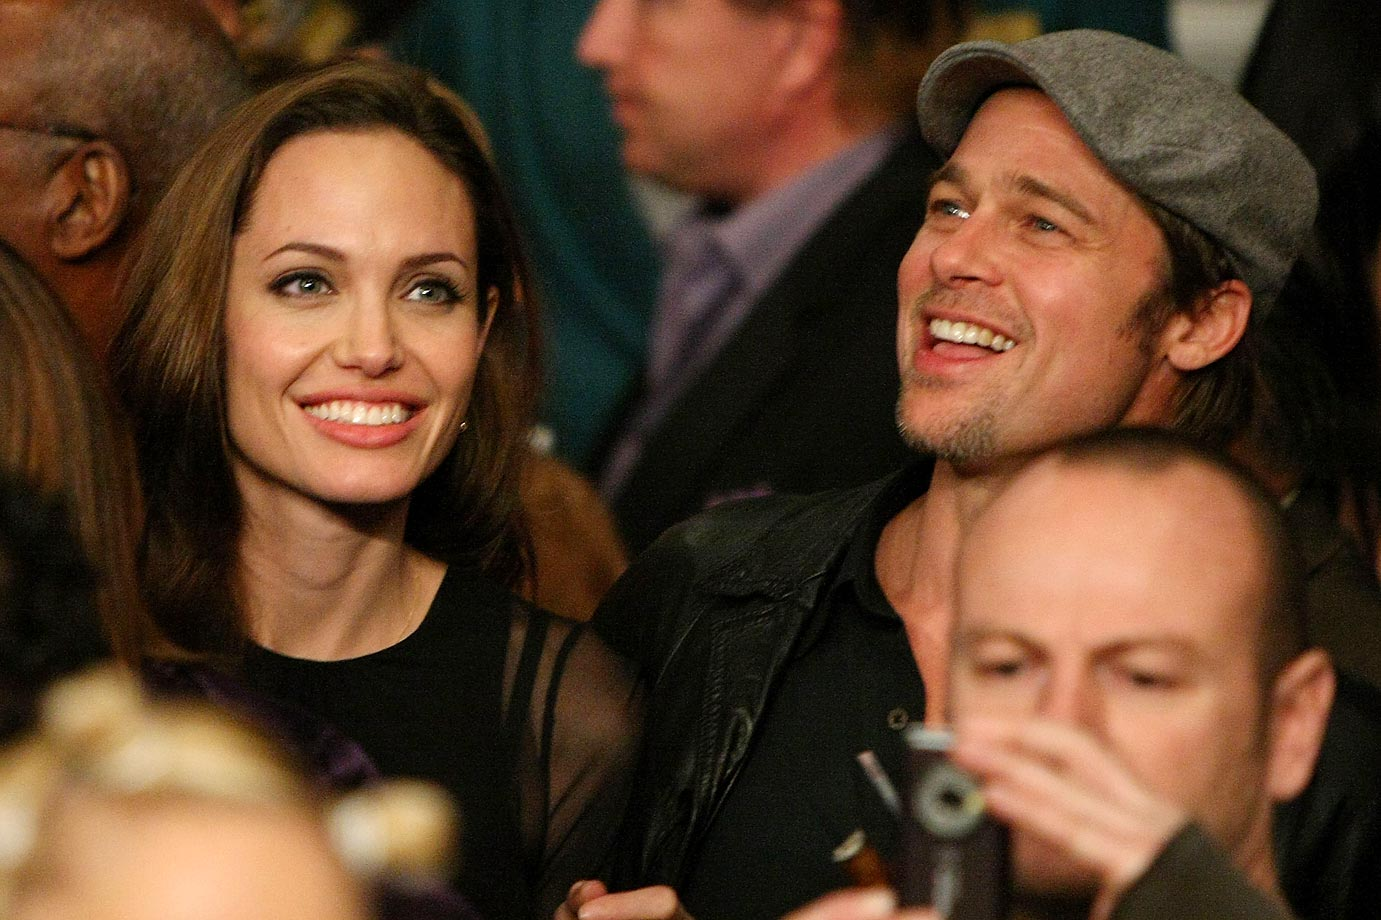 Angelina Jolie and Brad Pitt at Manny Pacquiao vs. Ricky Hatton.